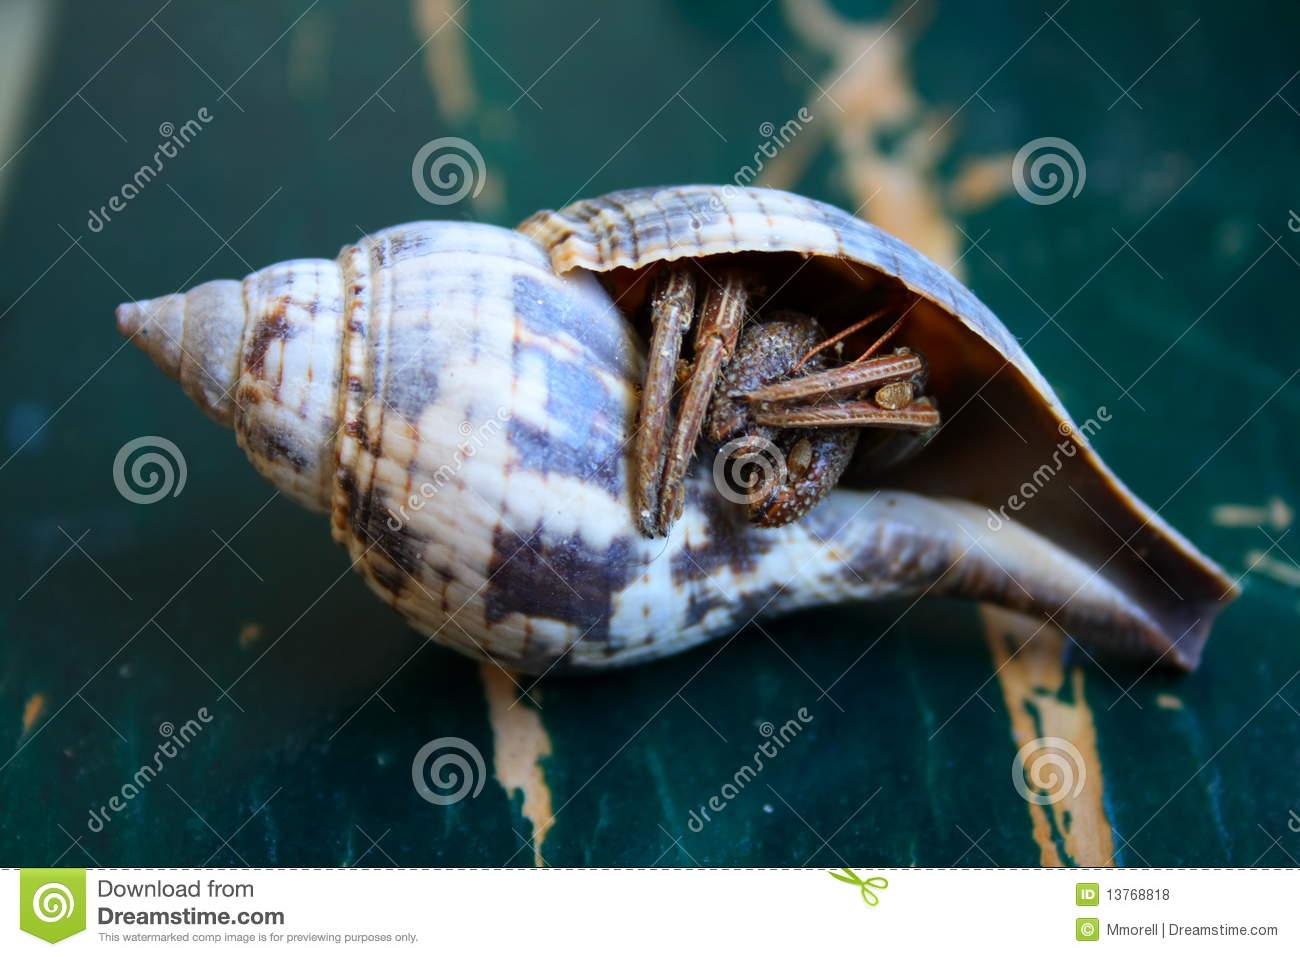 Hermit Crab Out of Shell Clipart Hermit Crab Out of Shell